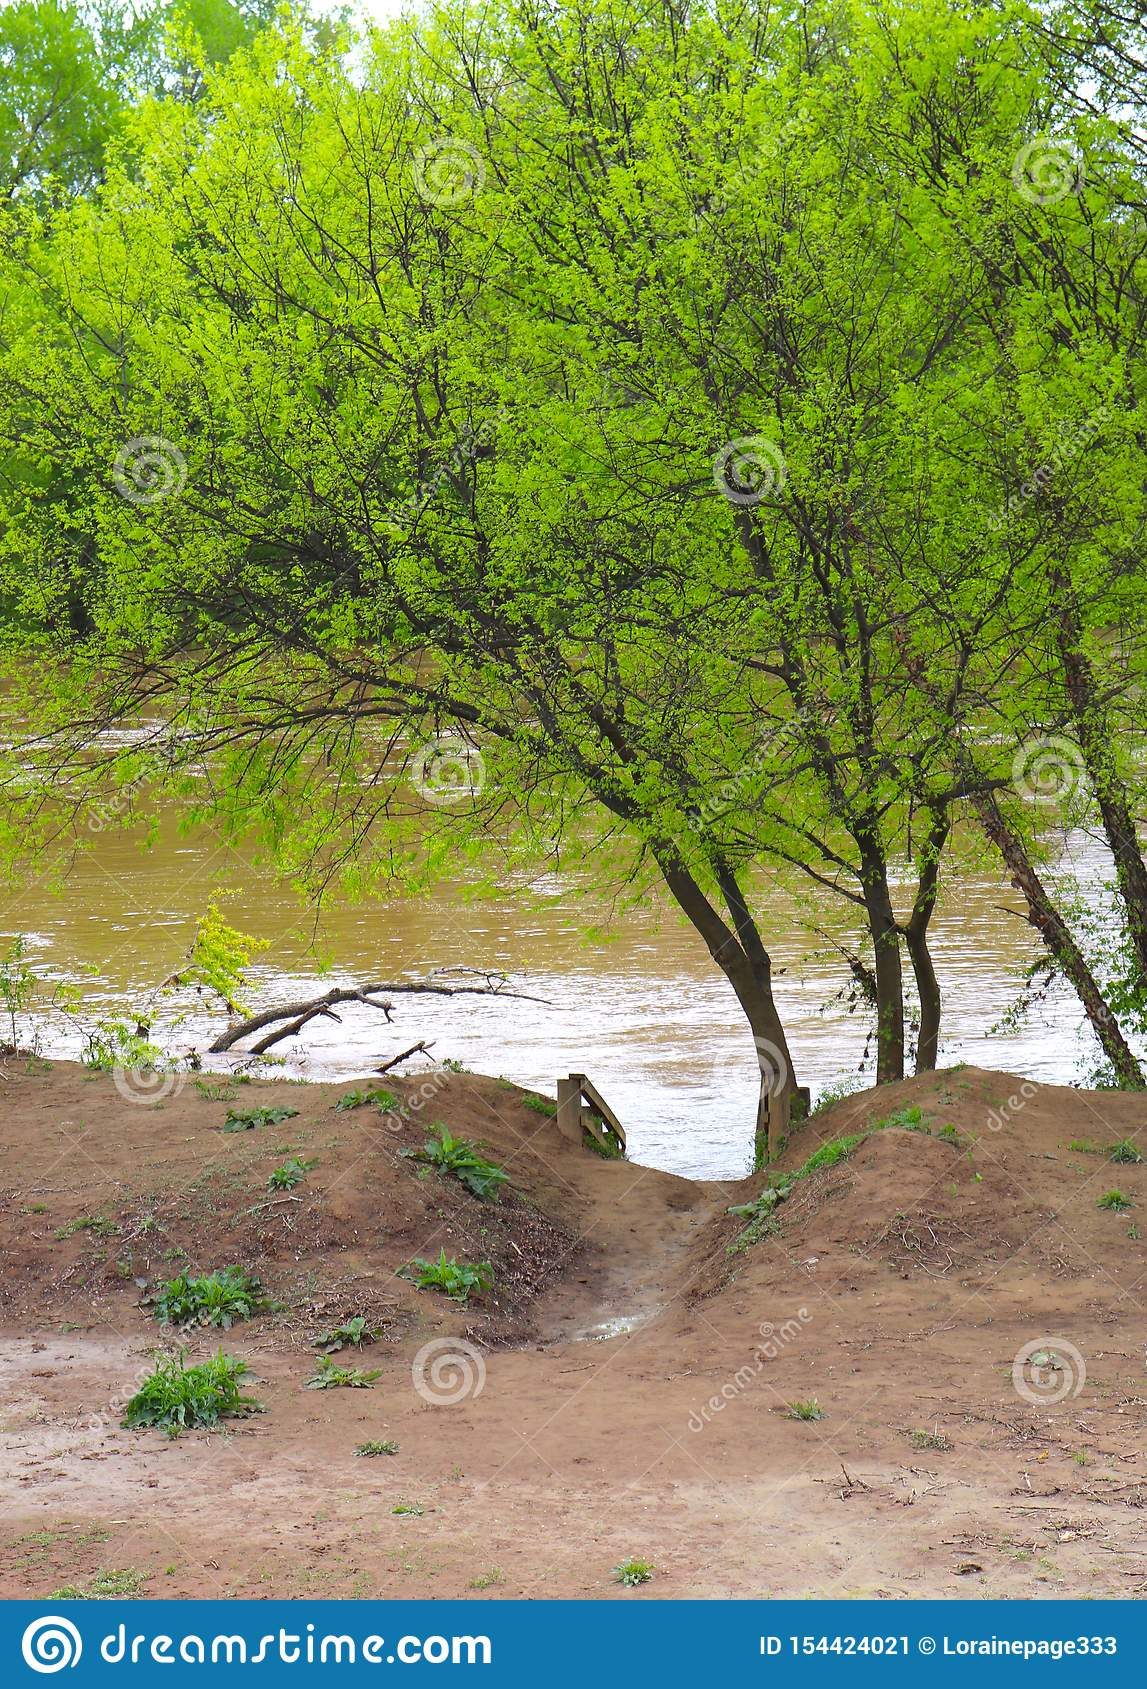 Muddy Pathway to River With Overseen by Bright Green Leafed Tree